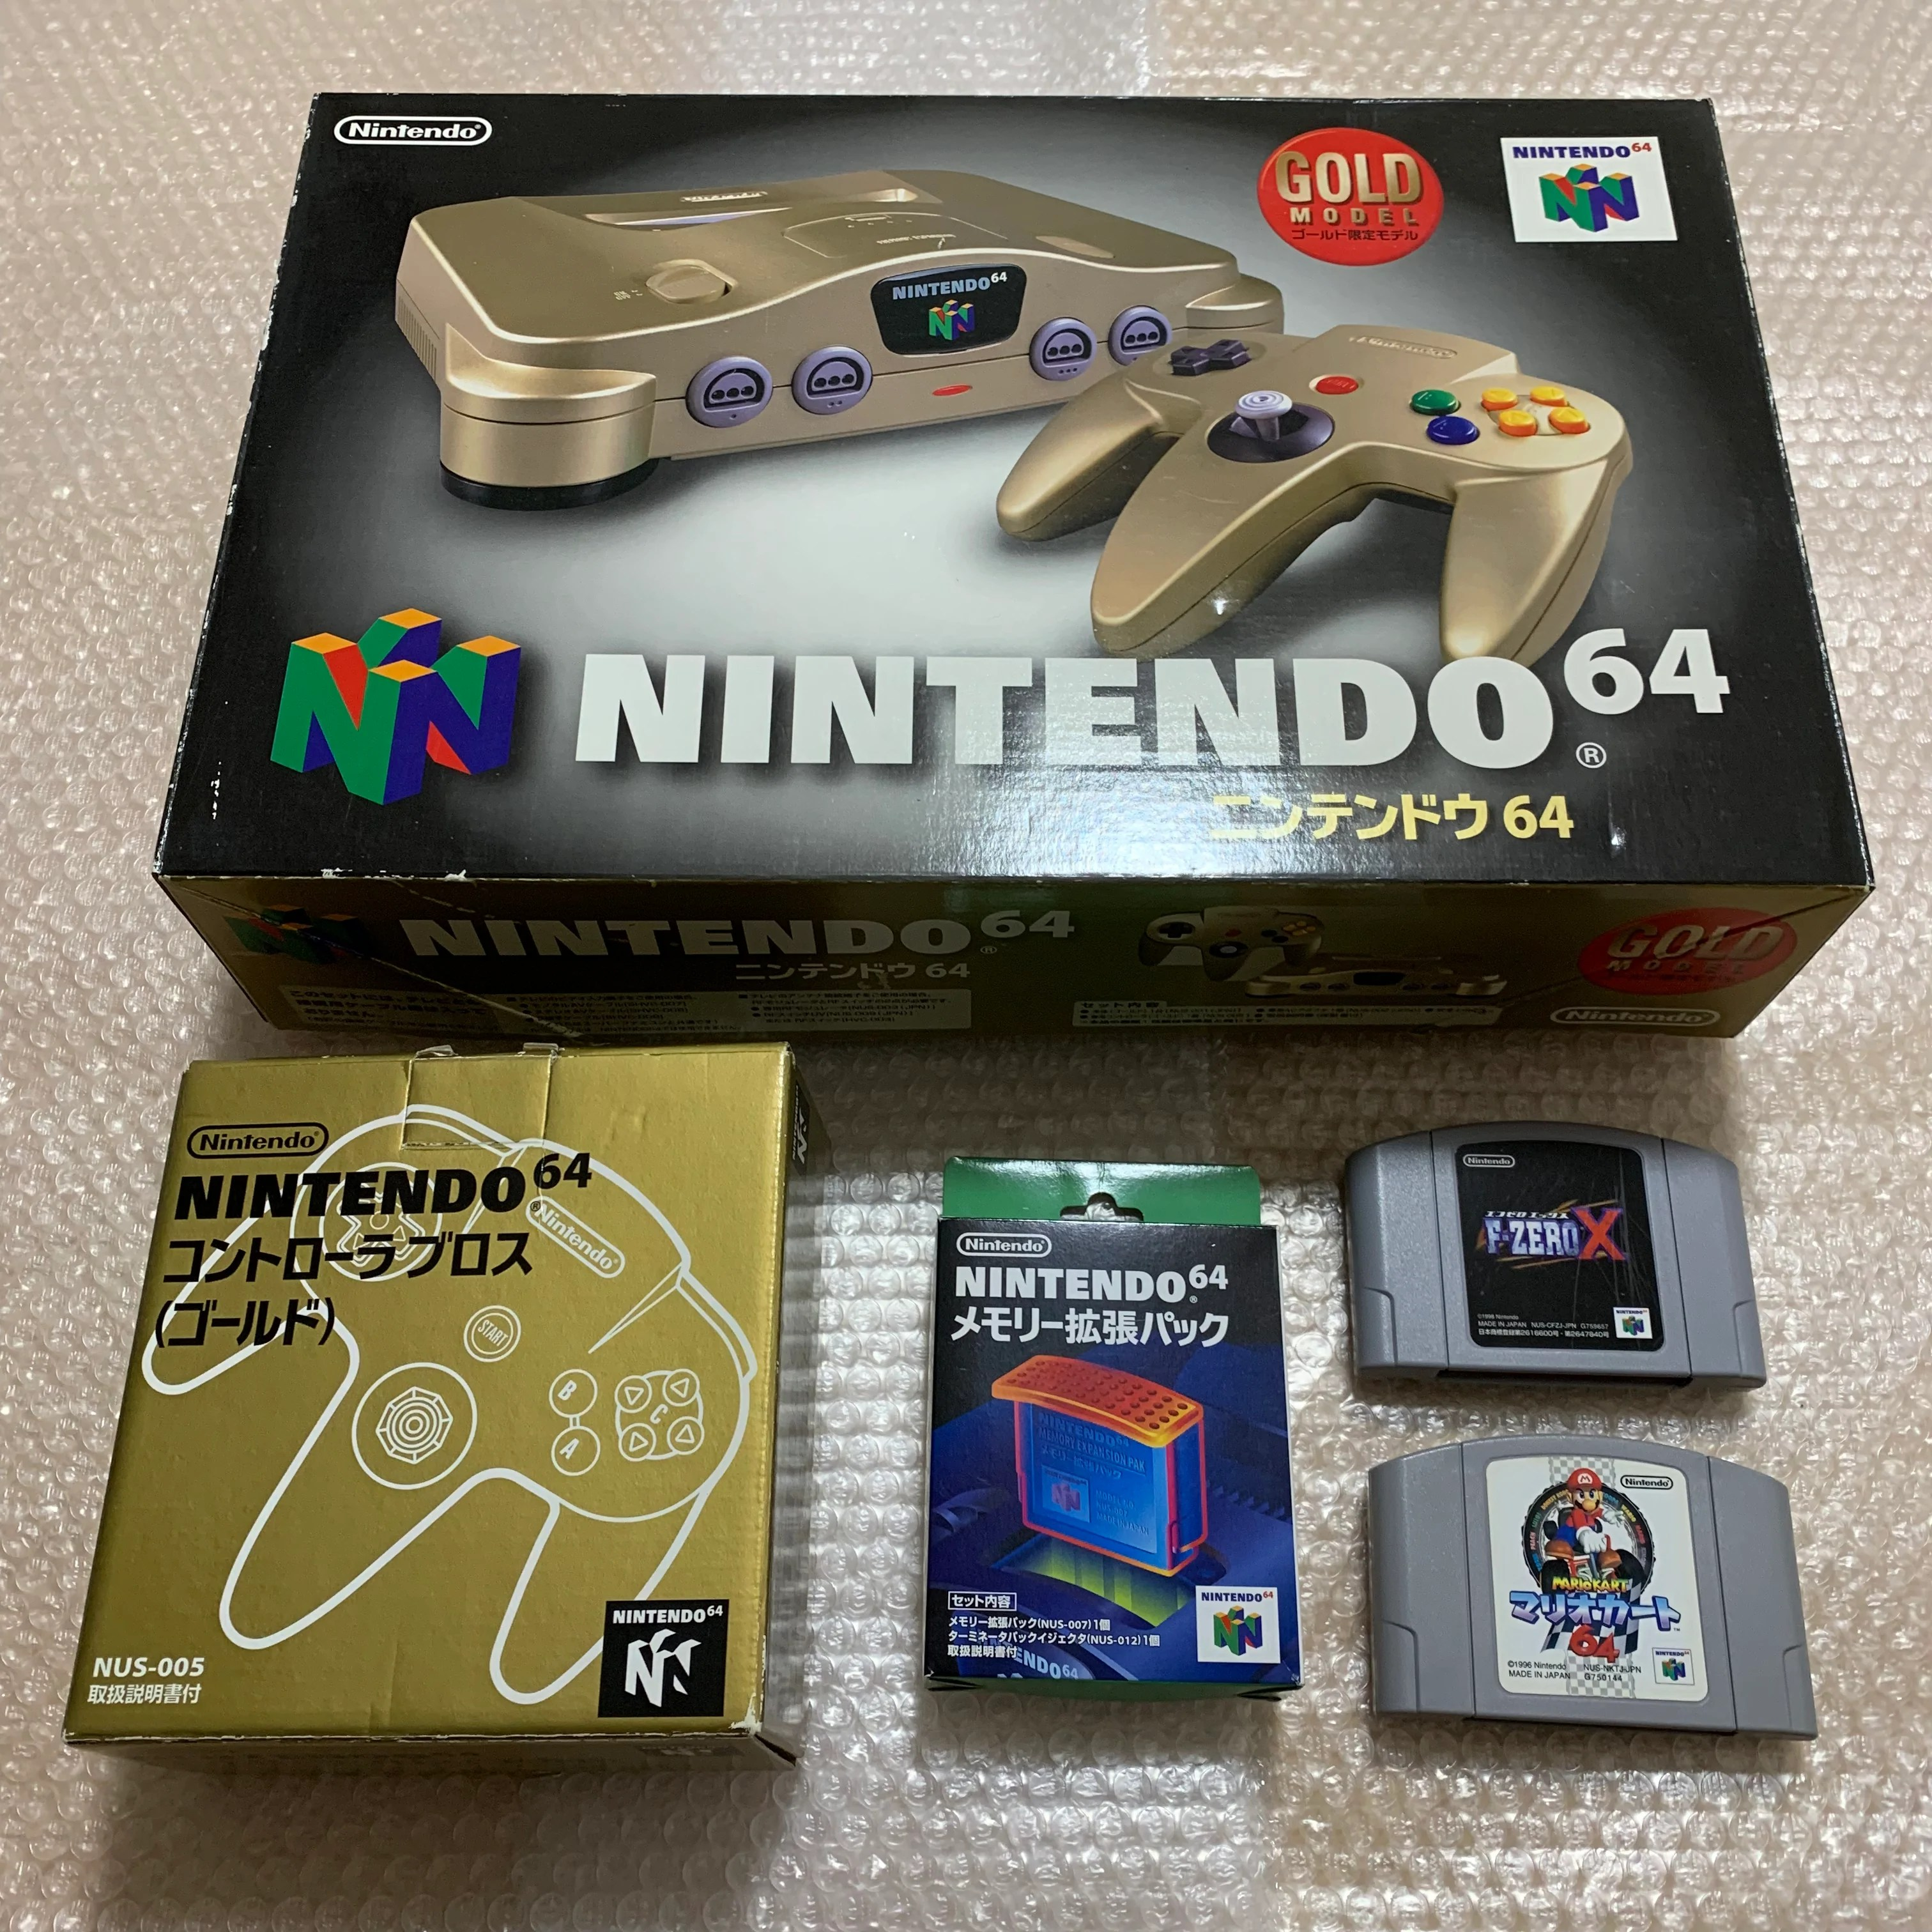 small resolution of gold nintendo 64 in box set with ultra hdmi kit compatible with jp a retroasia